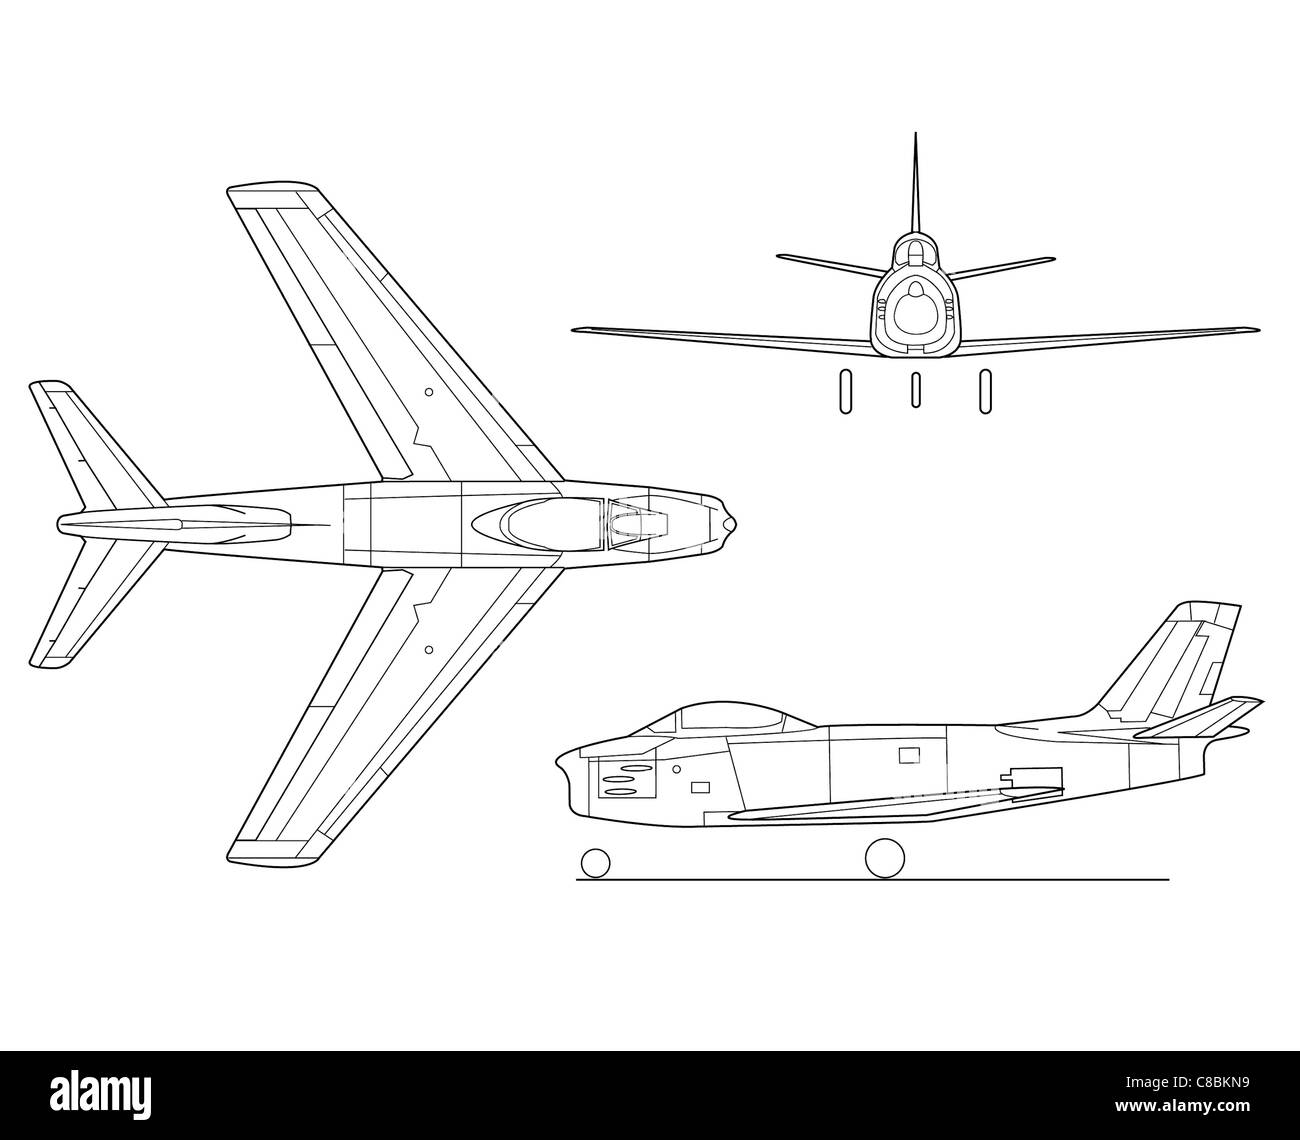 Line Drawing North America : F sabre black and white stock photos images alamy